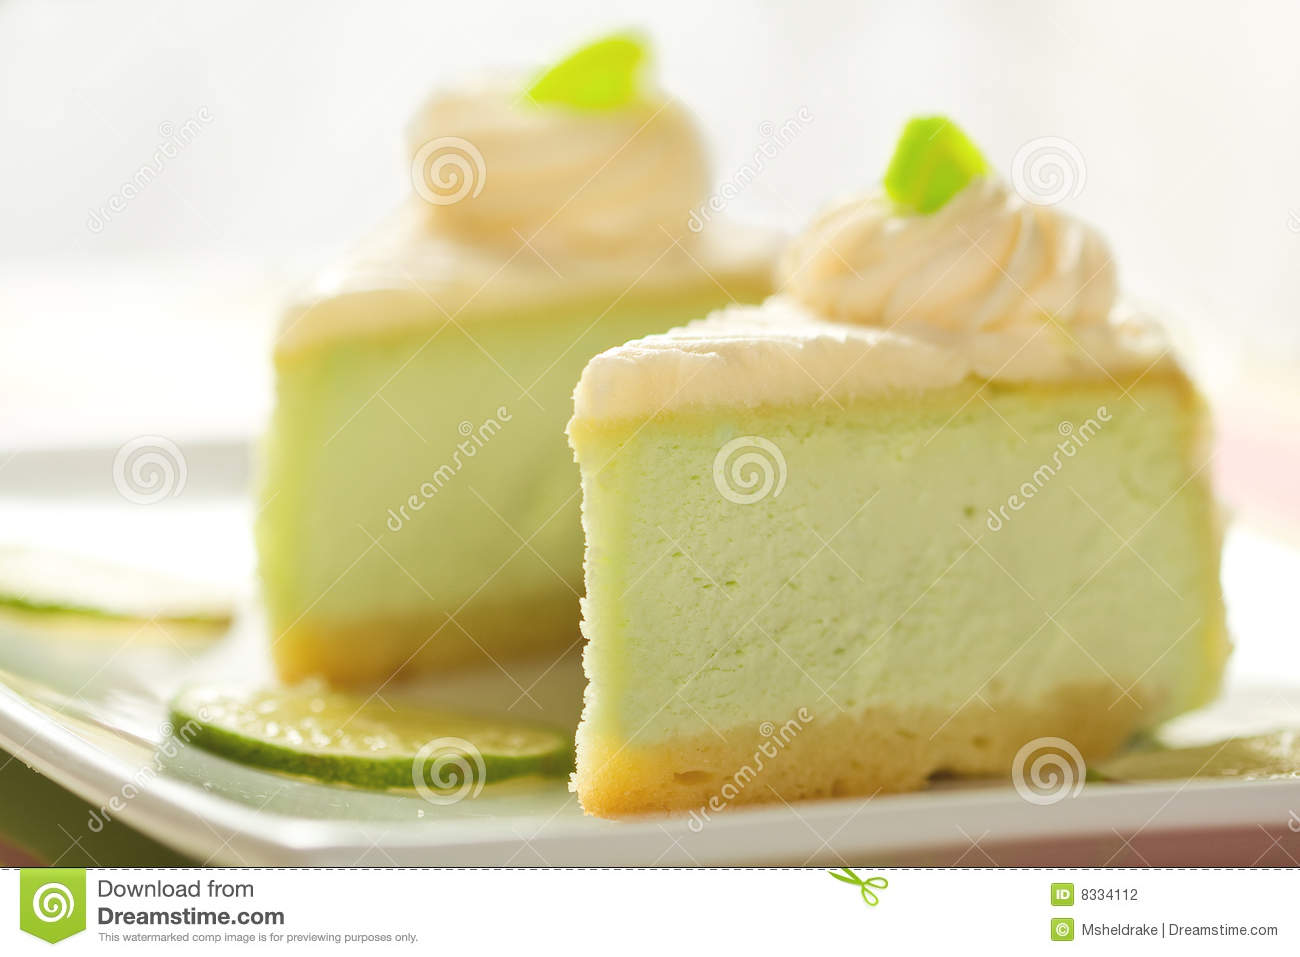 Two slices of key lime cheesecake on a large white platter.